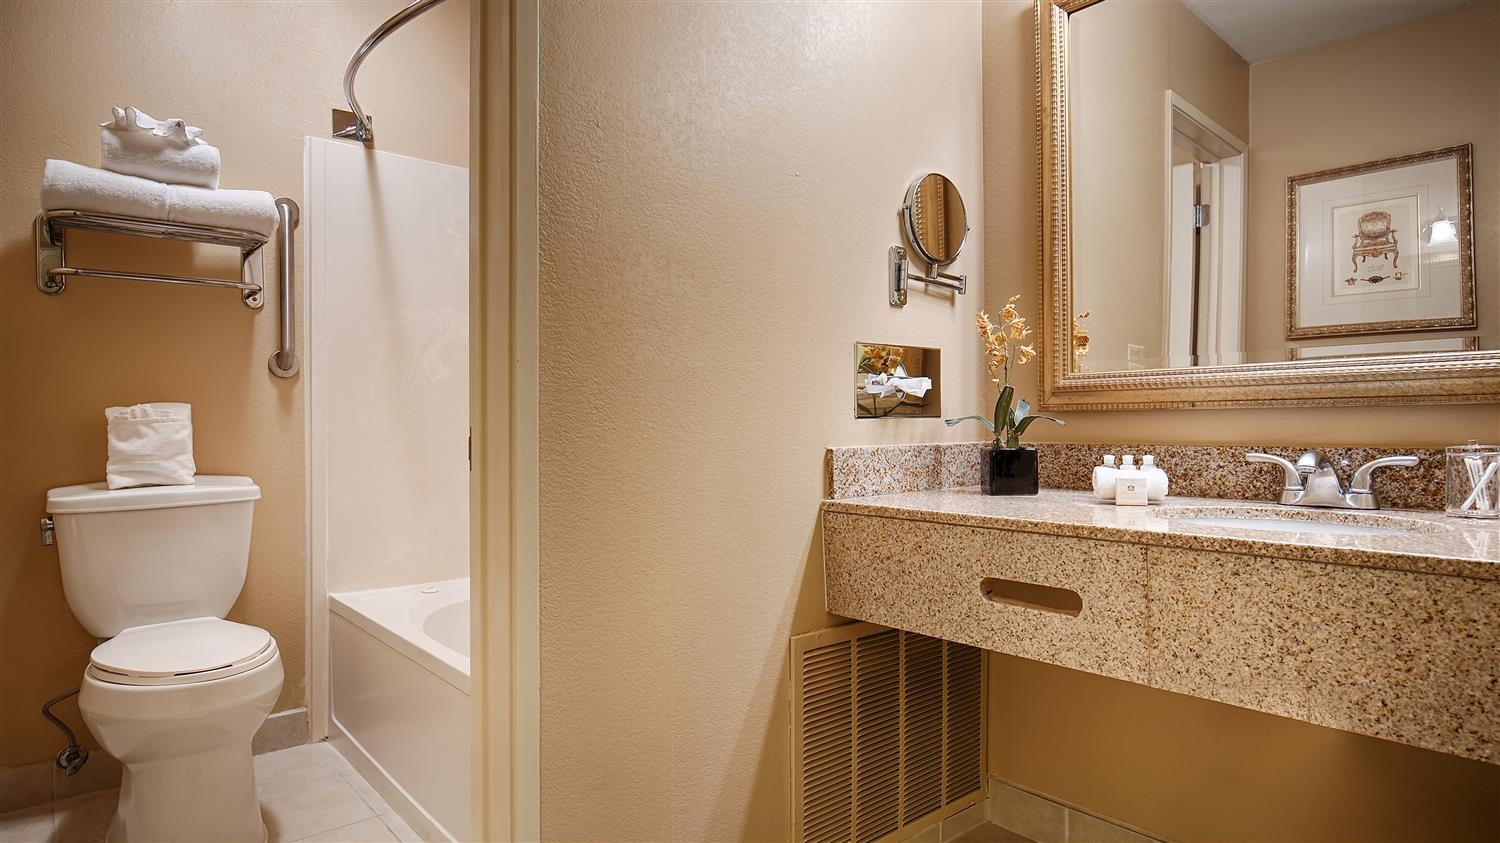 Enjoy Getting Ready For The Day In Our Fully Equipped Guest Bathrooms